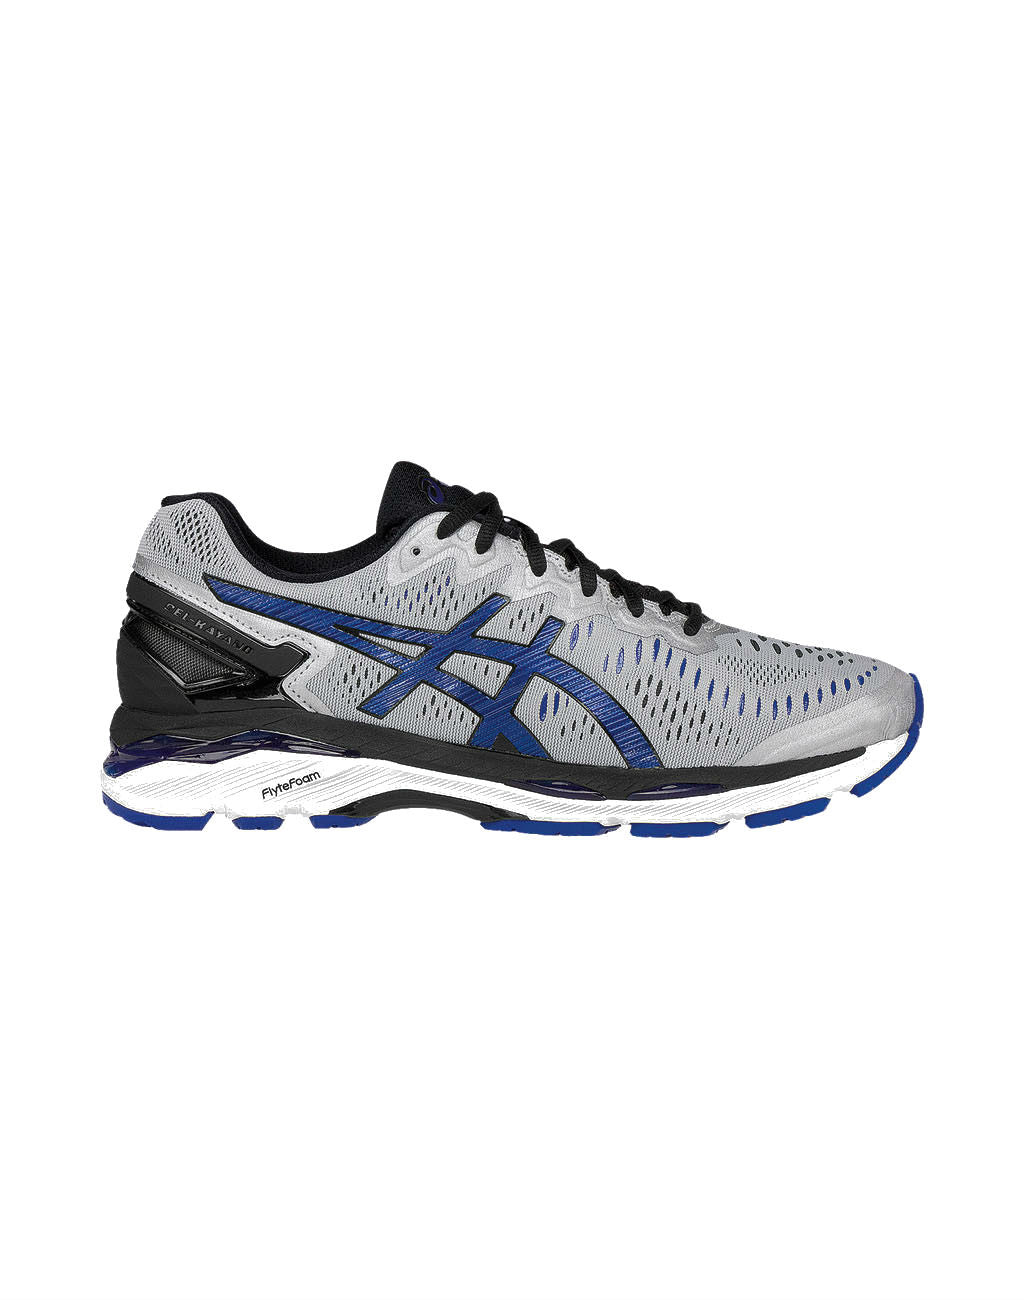 ASICS GEL-Kayano 23 (Men's)8.5_master_image